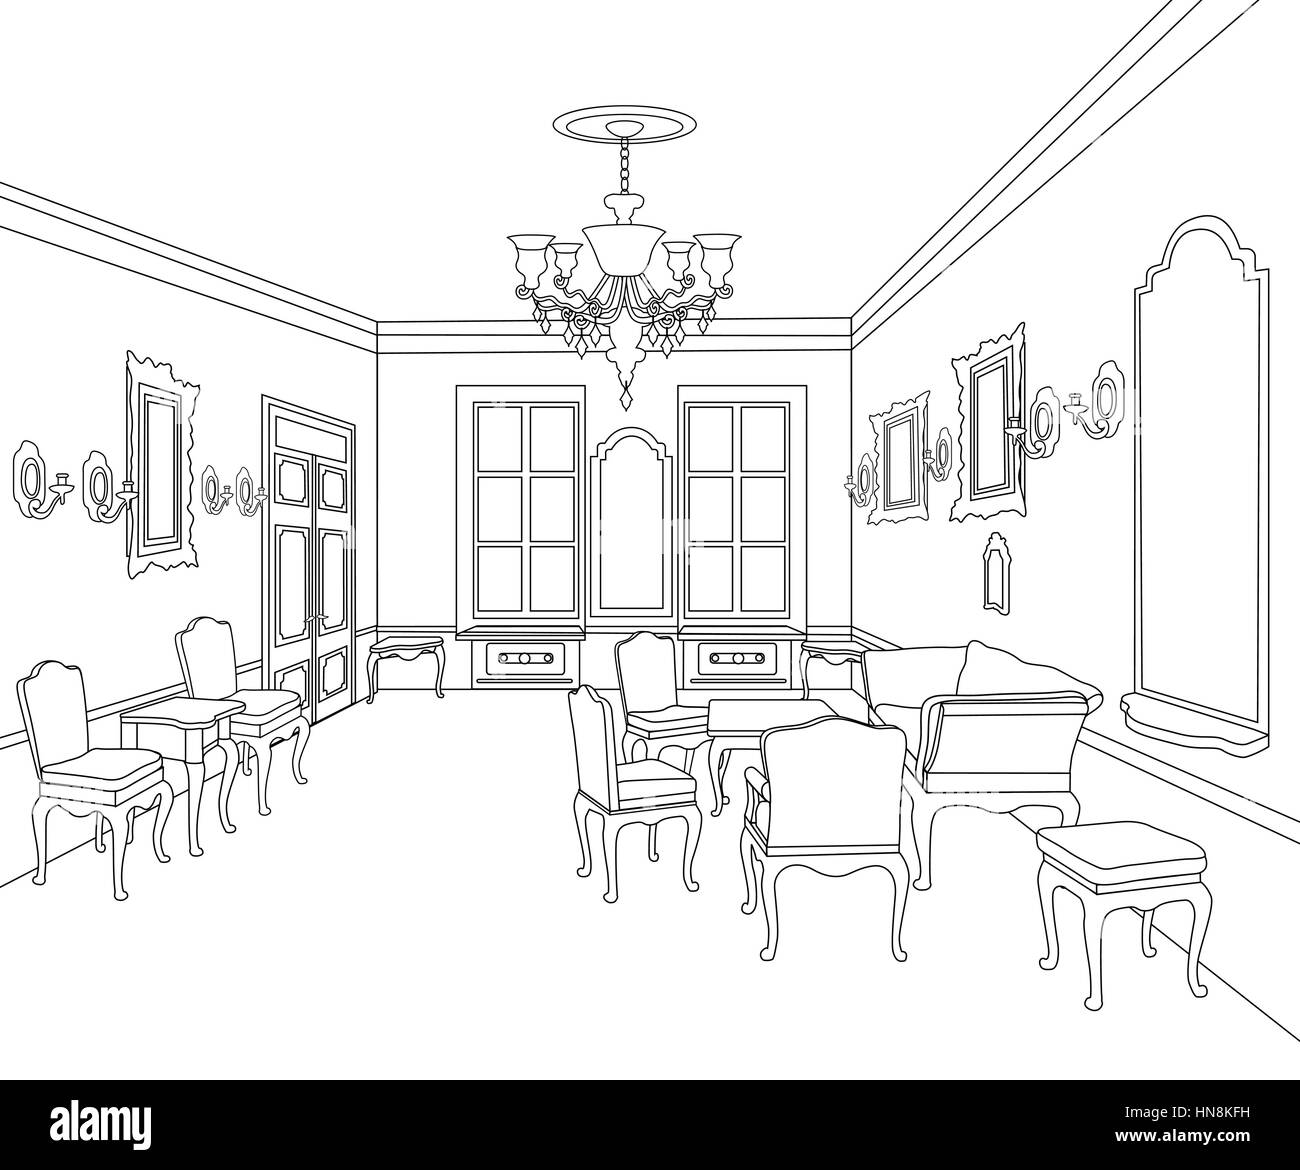 Tea estate black and white stock photos images alamy interior outline sketch furniture blueprint architectural design living room stock image malvernweather Gallery